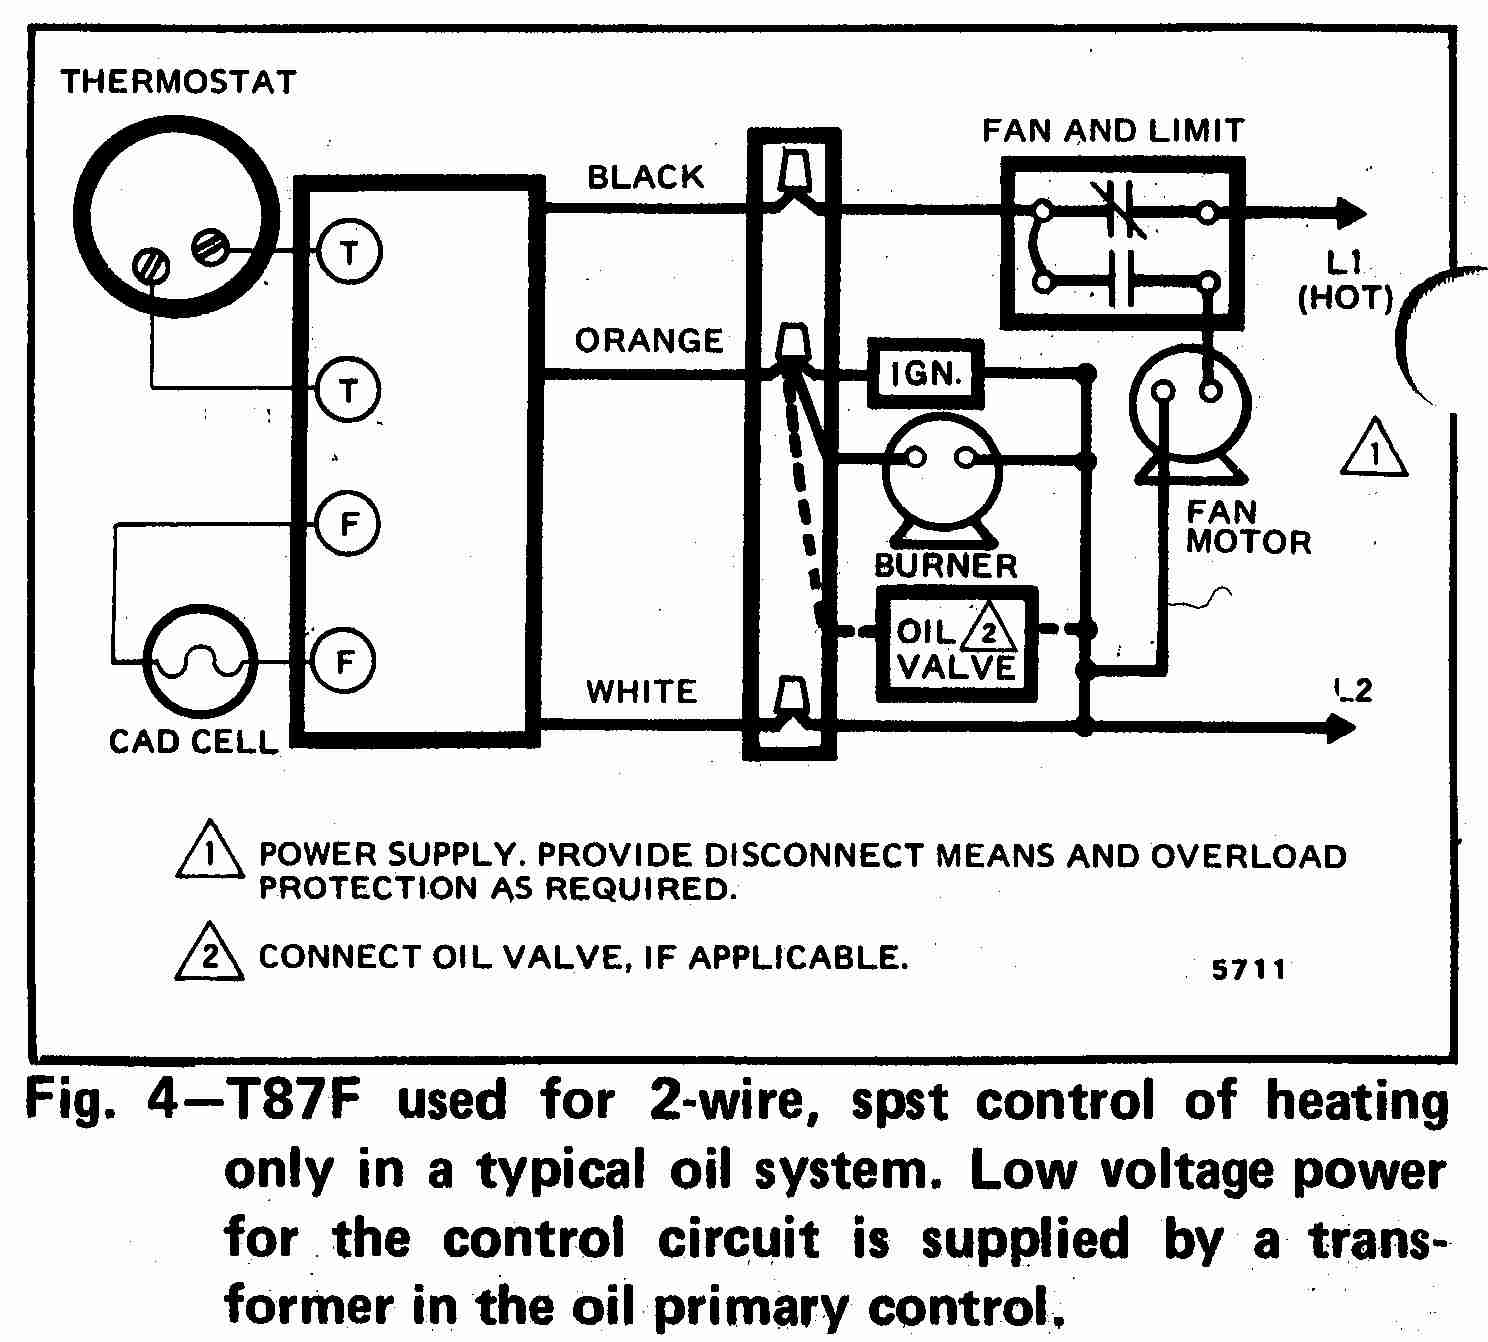 TT_T87F_0002_2W_DJF room thermostat wiring diagrams for hvac systems honeywell wiring diagram at crackthecode.co